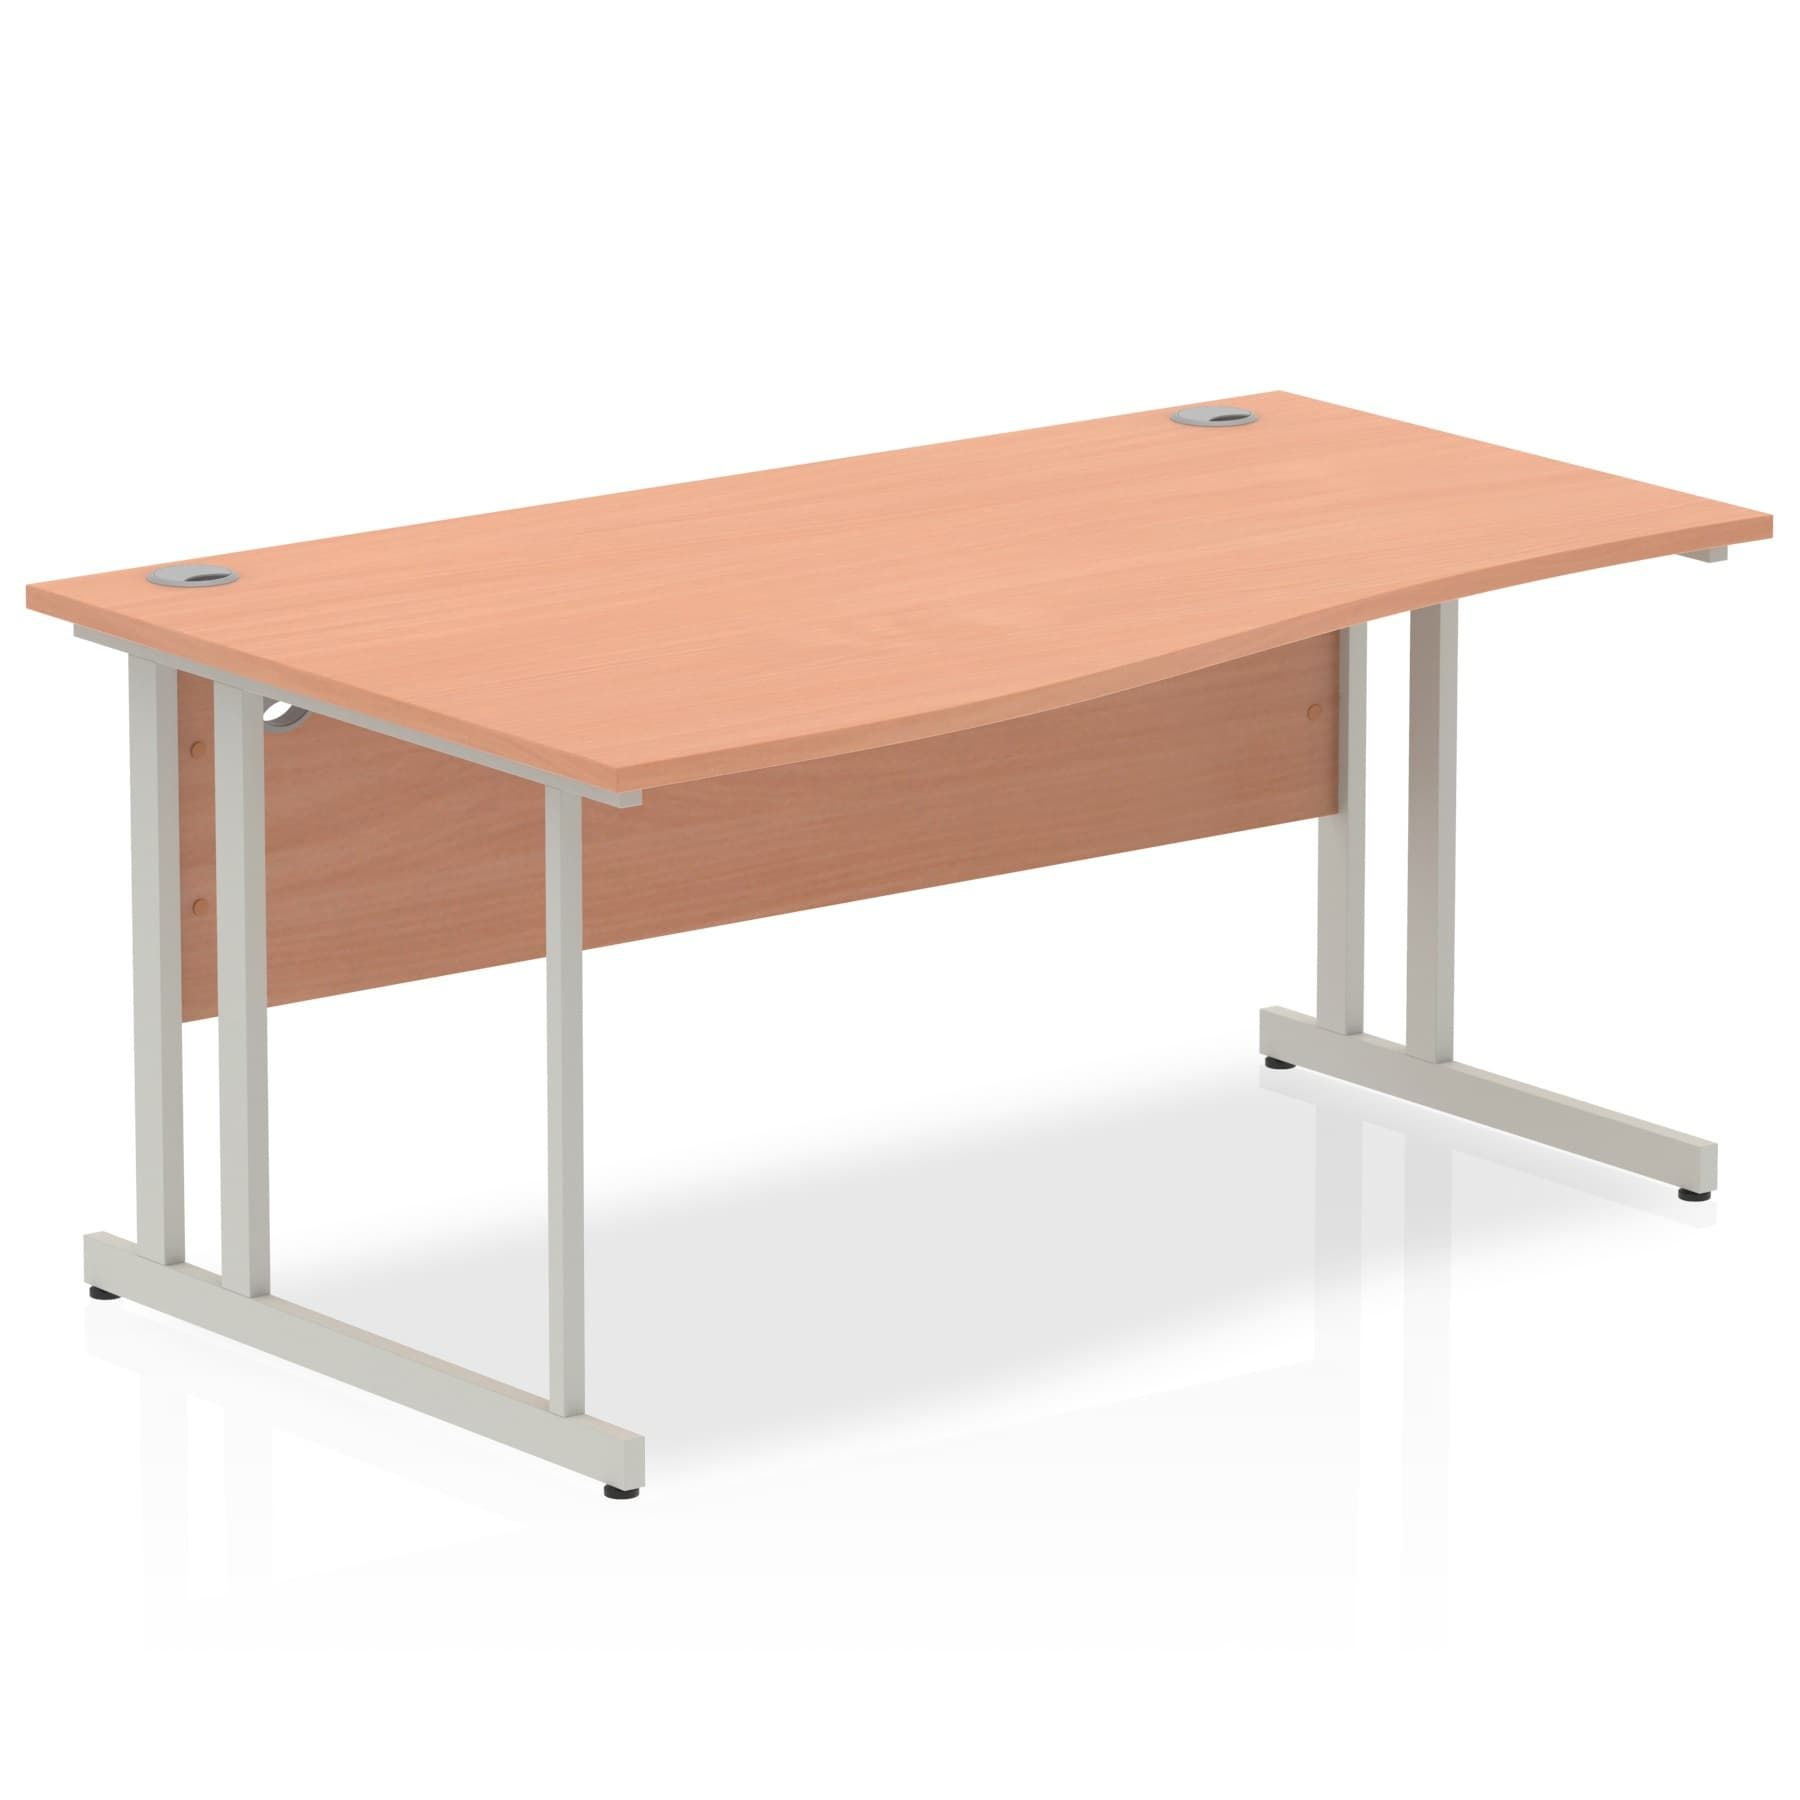 Impulse 1600 Left Hand Wave Desk with Cantilever Leg